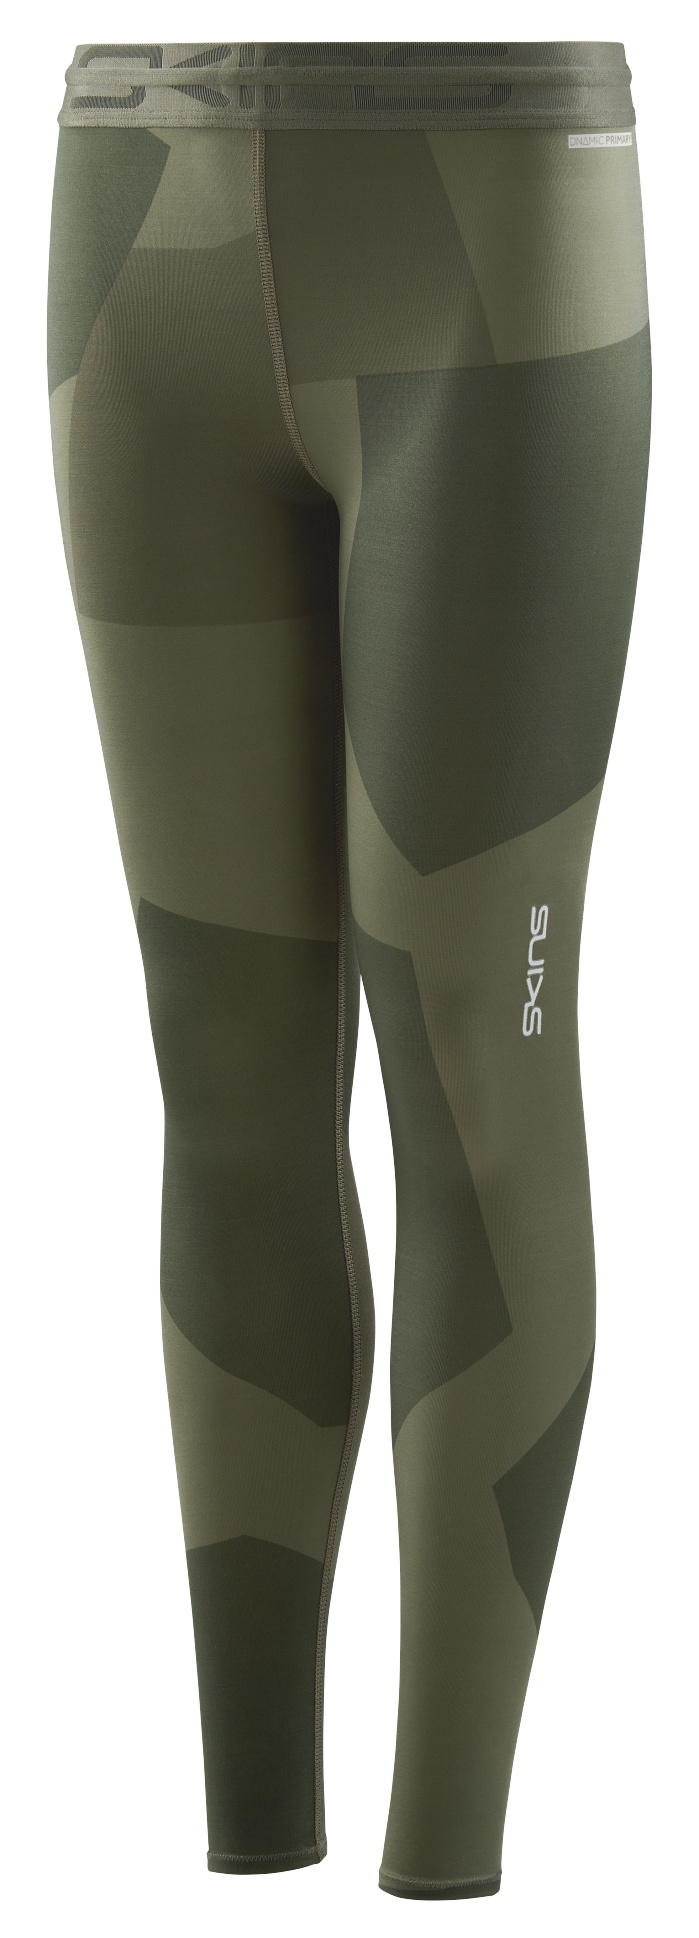 Primary Youth Long Tights Deconst Camo Utility